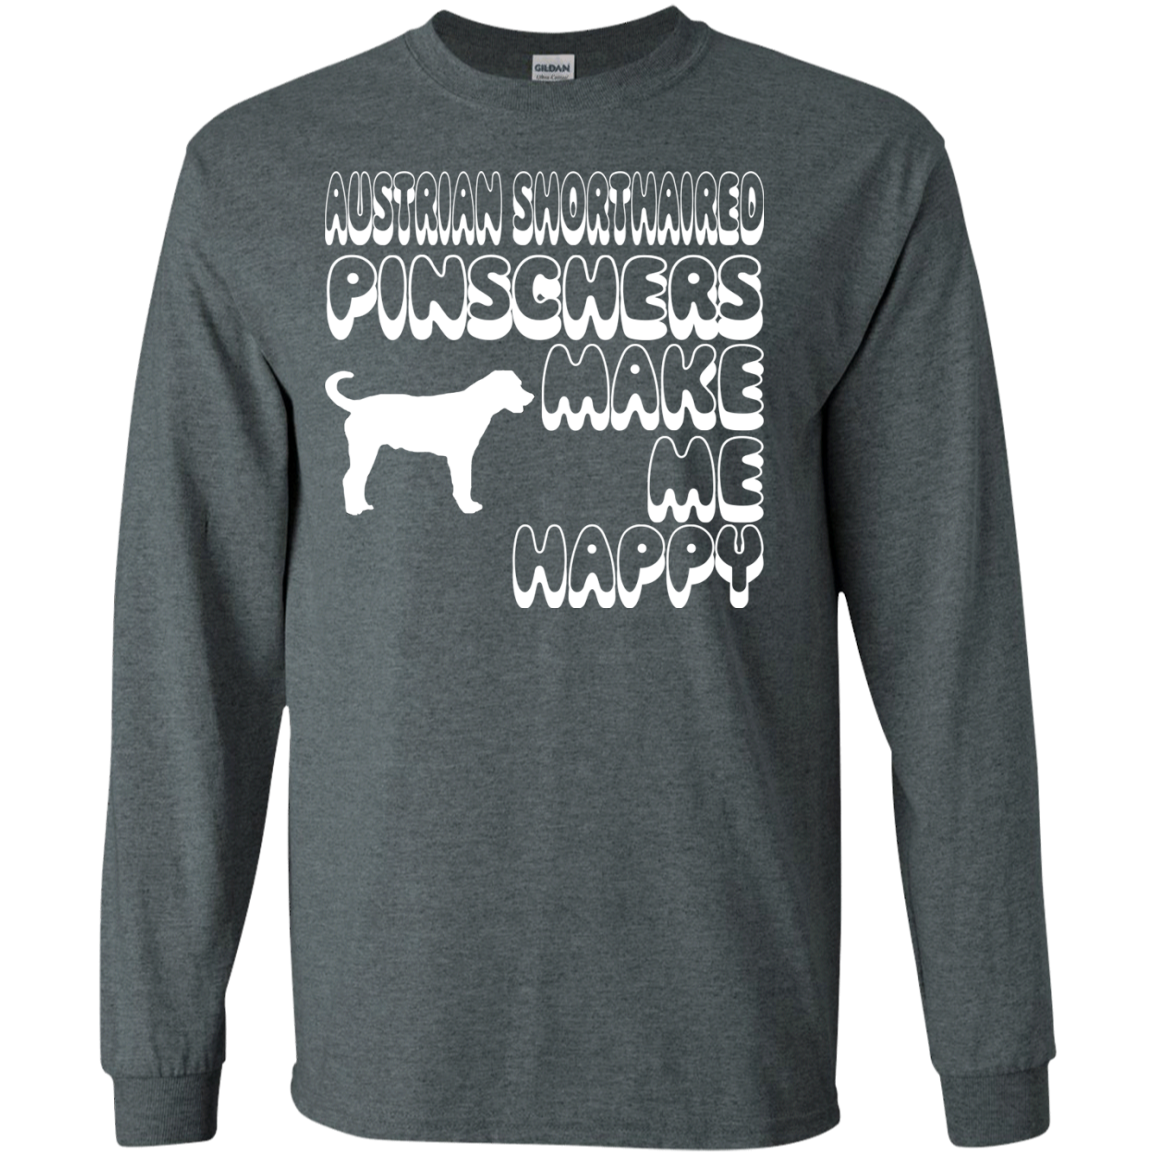 Australian Shorthaired Pinschers Make Me Happy Long Sleeve Tees